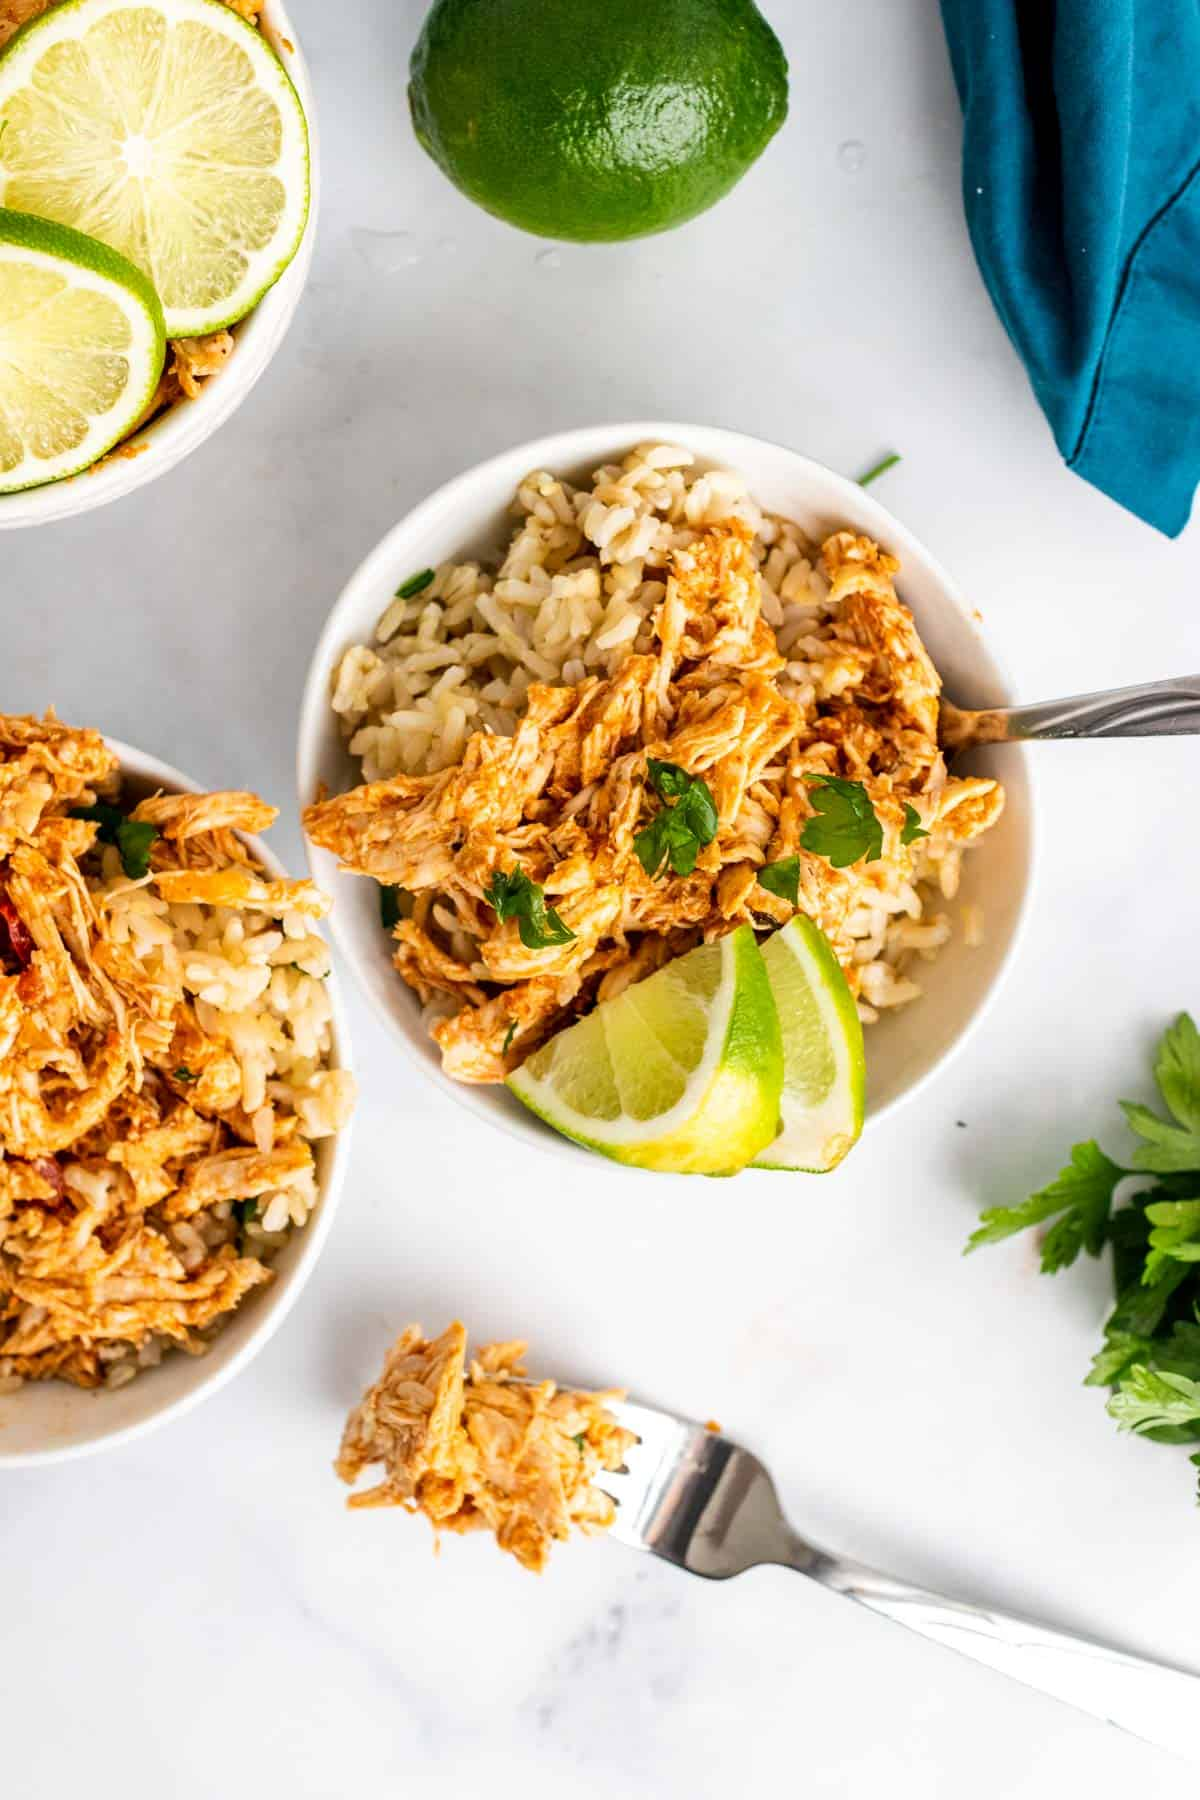 Two bowls of shredded chicken over white rice, garnished with cilantro and lime wedges, as seen from above